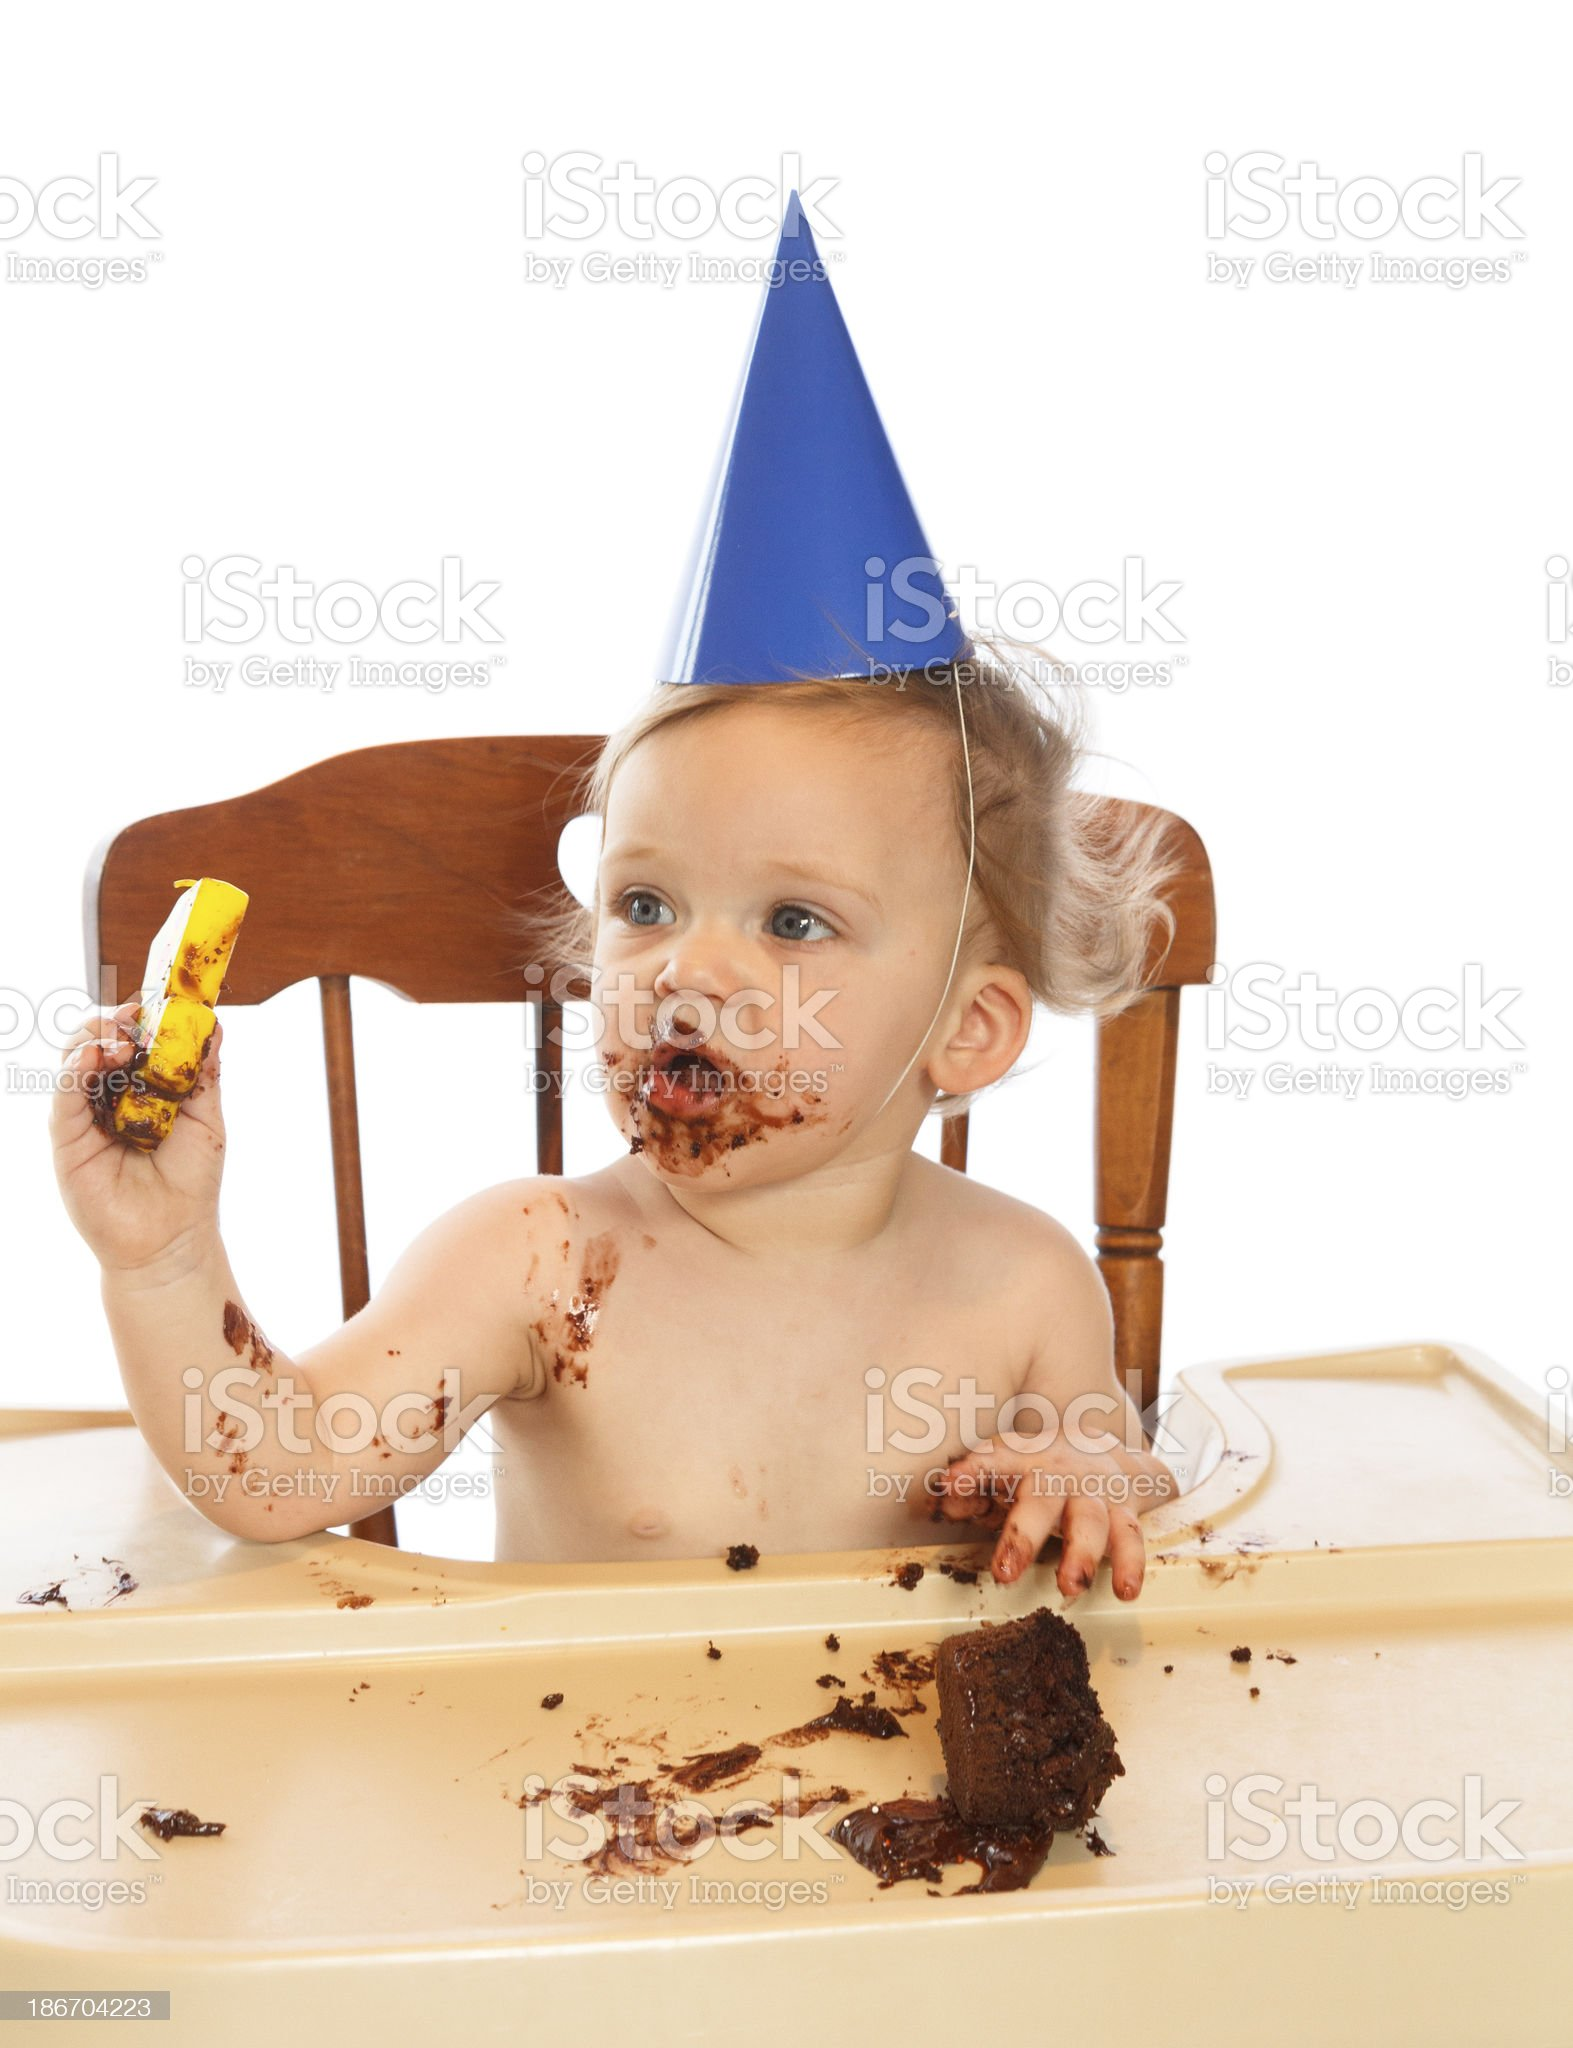 Babies First Birthday royalty-free stock photo